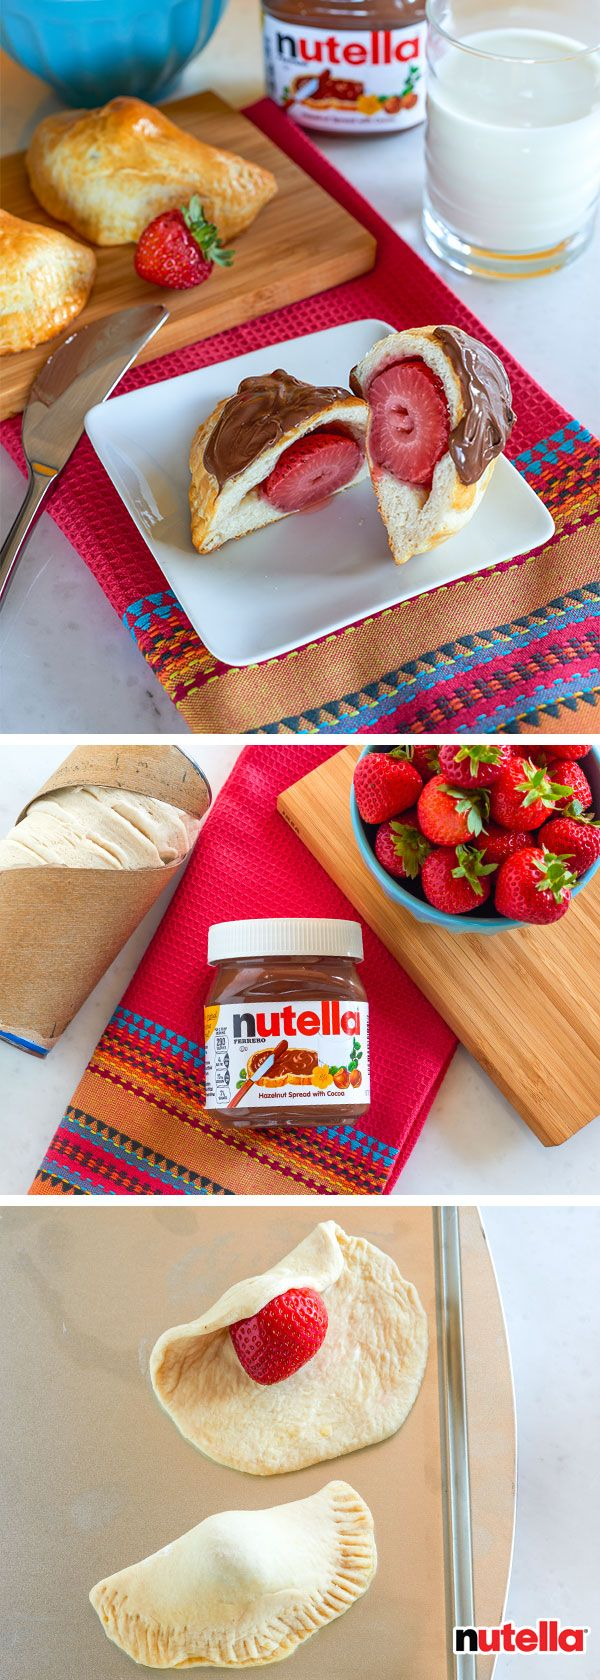 Introducing the new star of your breakfast: strawberry bites, featuring Nutella®. Place a strawberry on rolled-out pre-made biscuit dough. Fold to create a half-circle and bake as directed by the packaging. For a red-carpet-ready bite, finish with a spread of Nutella.